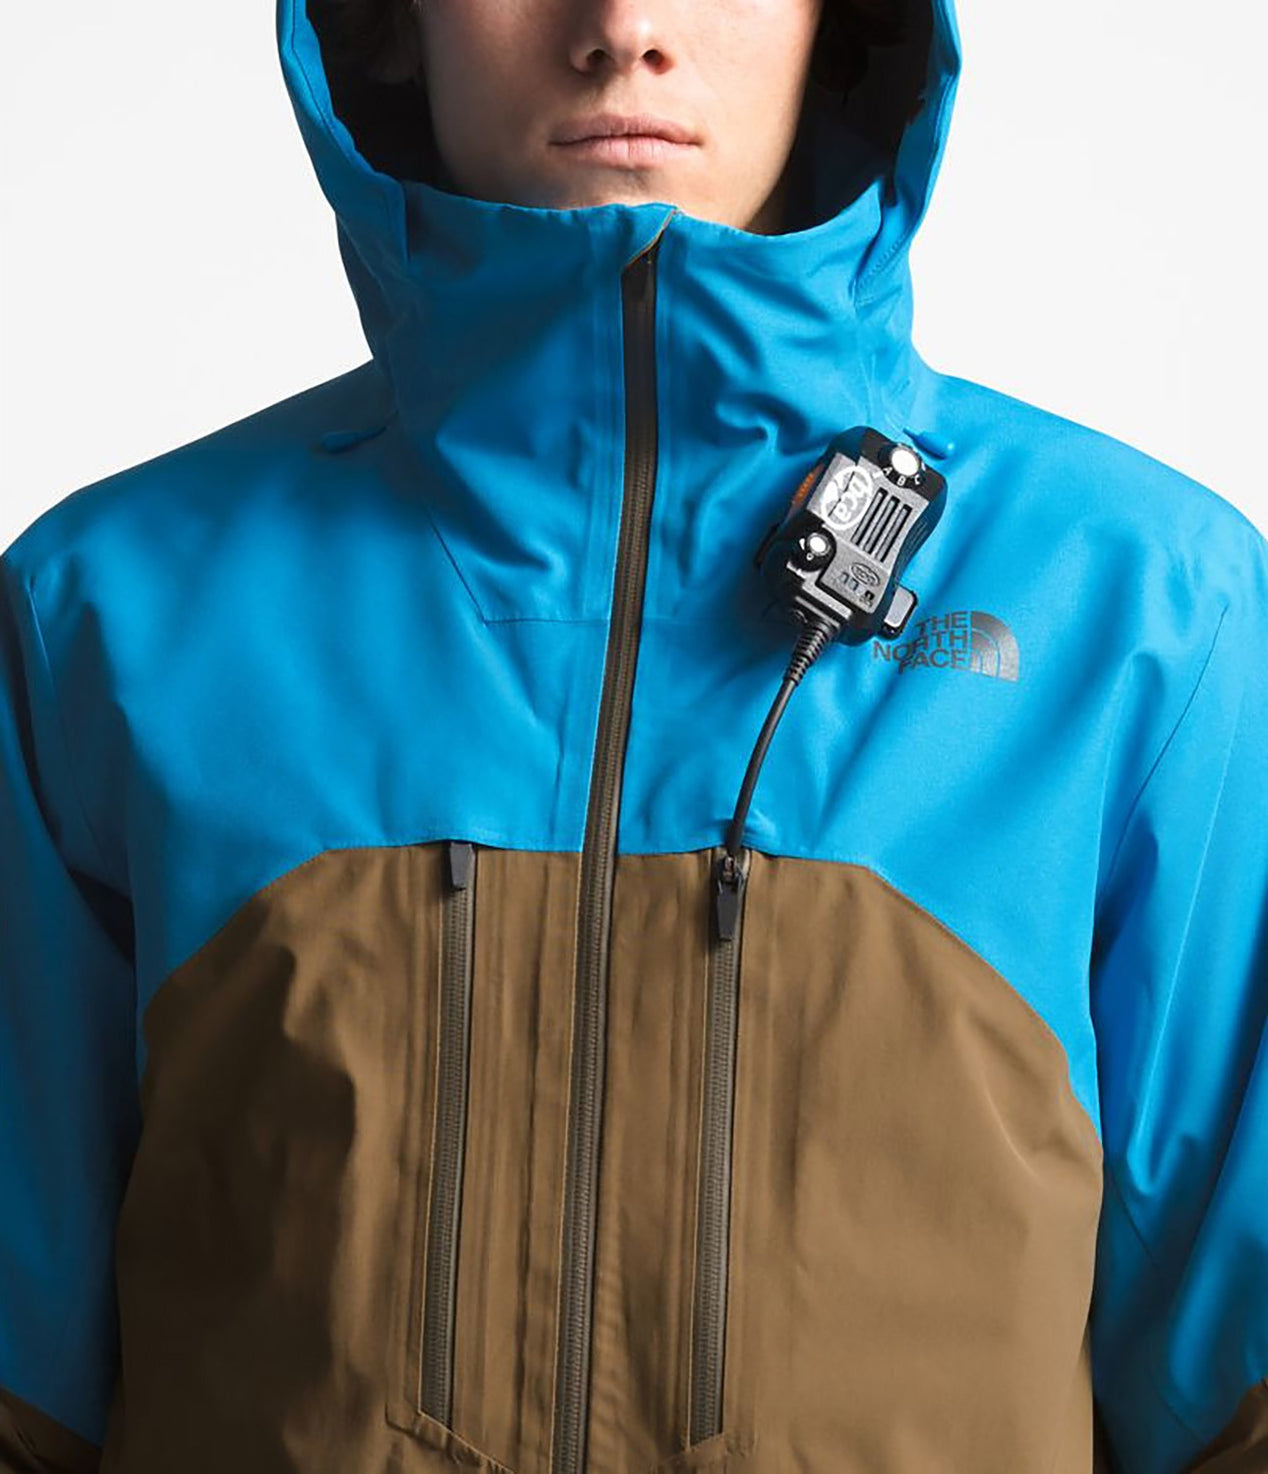 Powder Guide Jacket - Mens Hyper Blue - Beech Green · Powder Guide Jacket -  Mens thumb · Powder Guide Jacket - Mens thumb ... 61699f06a611